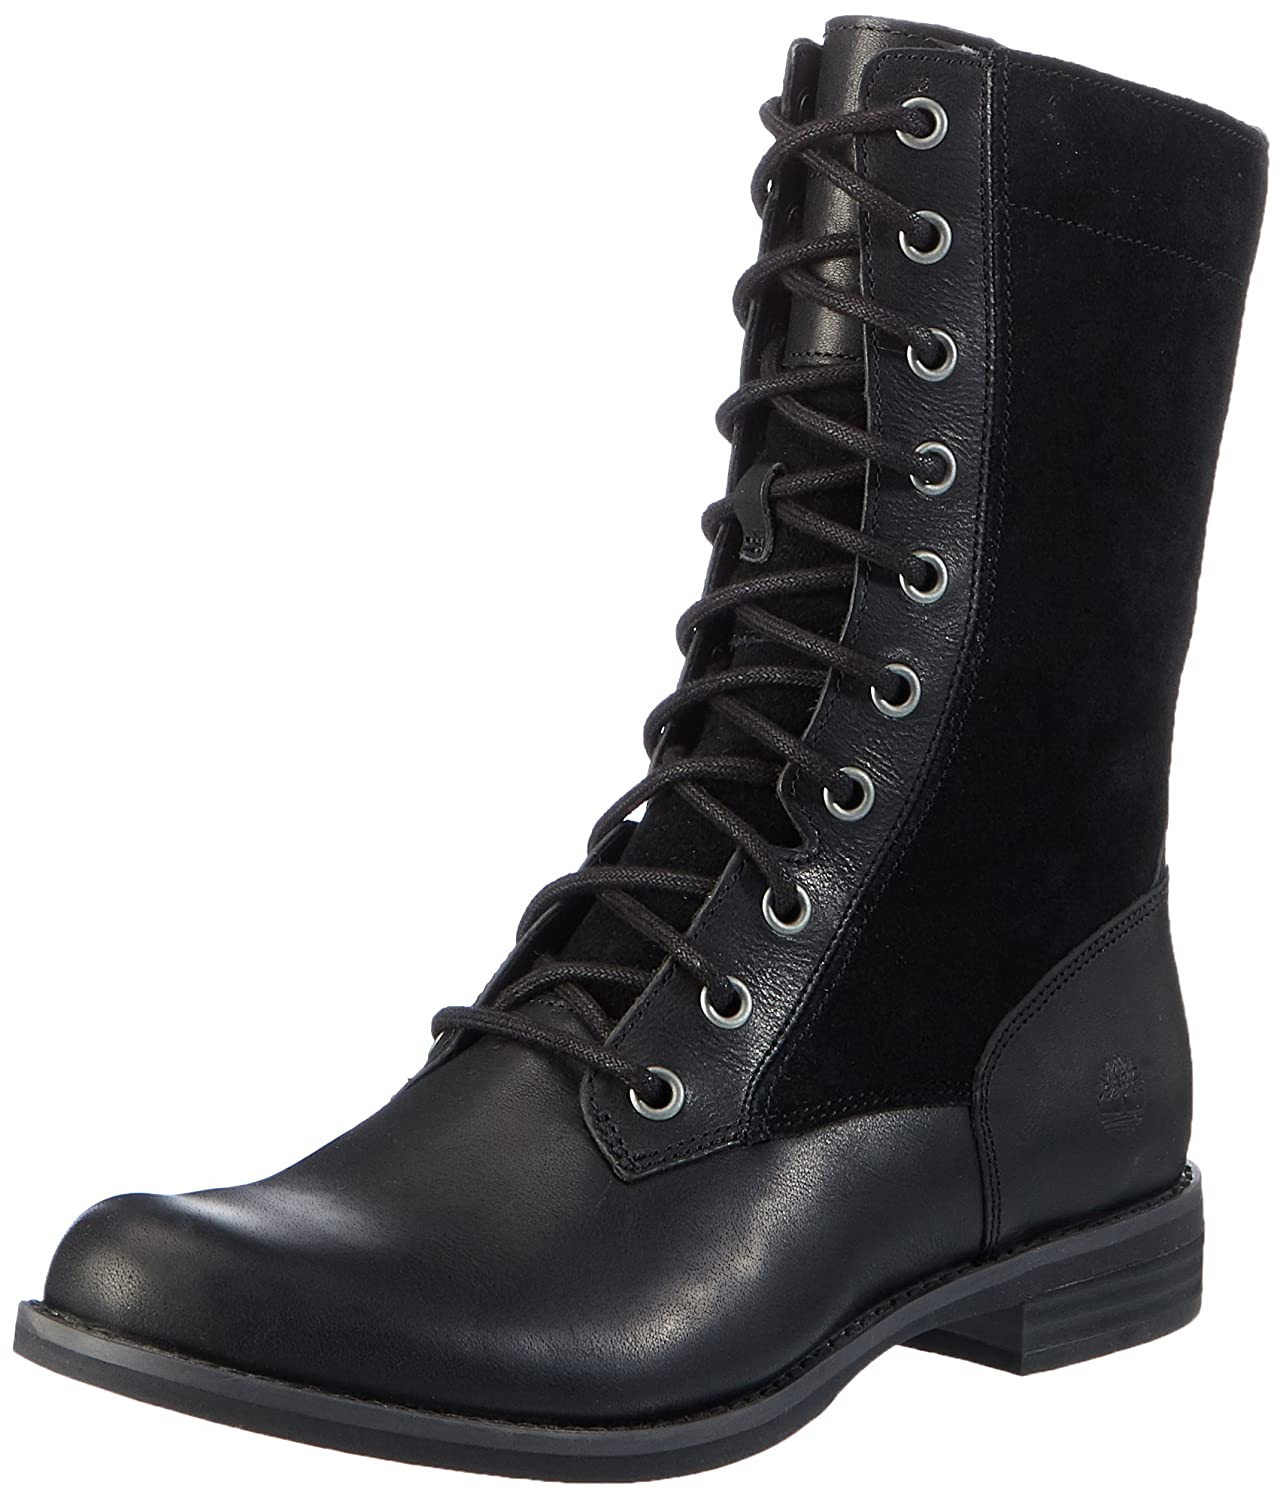 Details about Timberland Women's 14 Inch Premium Side Zip Lace Waterproof Boot 8632A Black